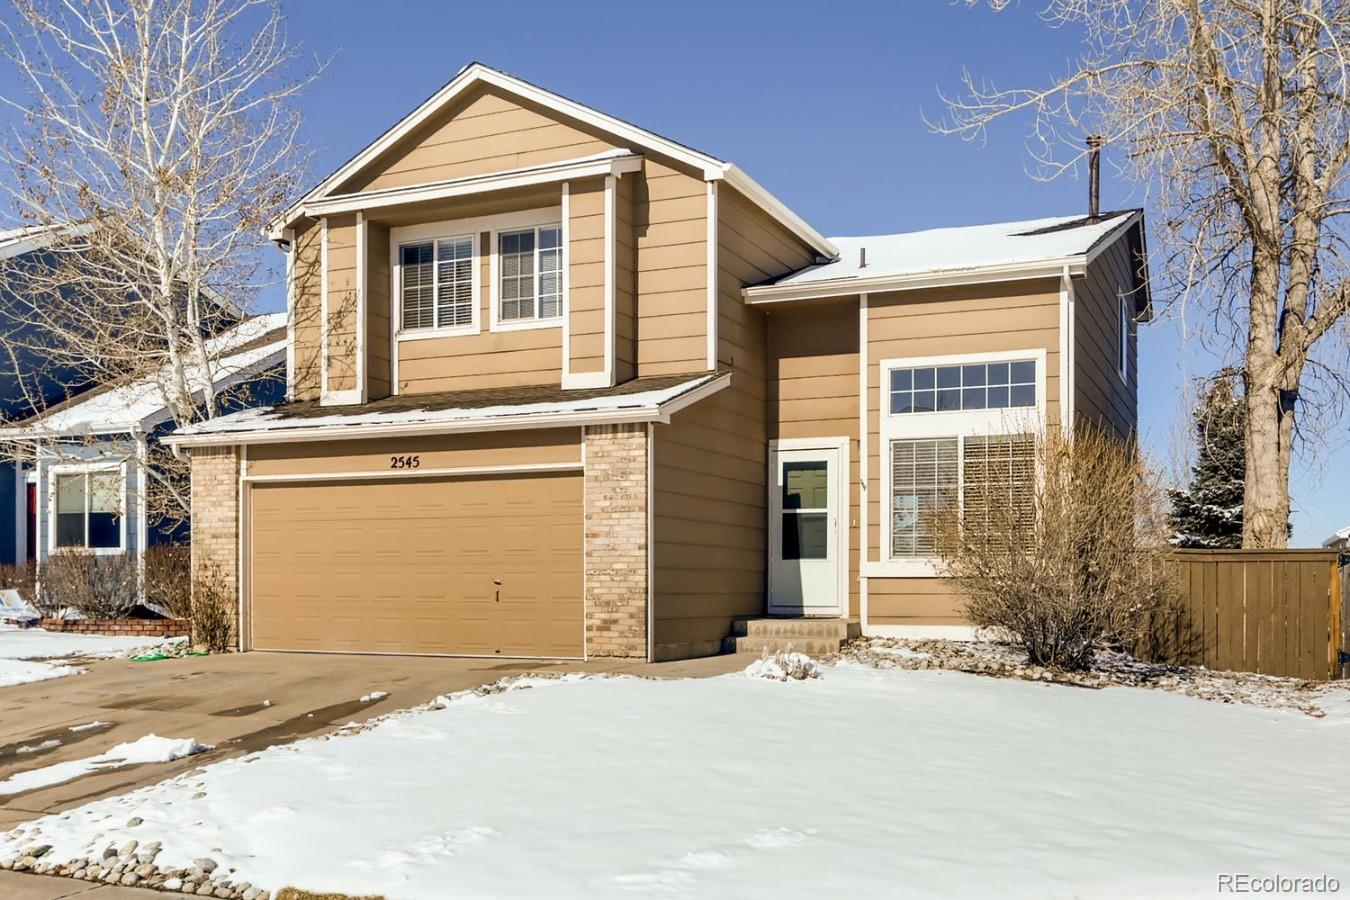 MLS# 9759208 - 1 - 2545 Cove Creek Court, Highlands Ranch, CO 80129